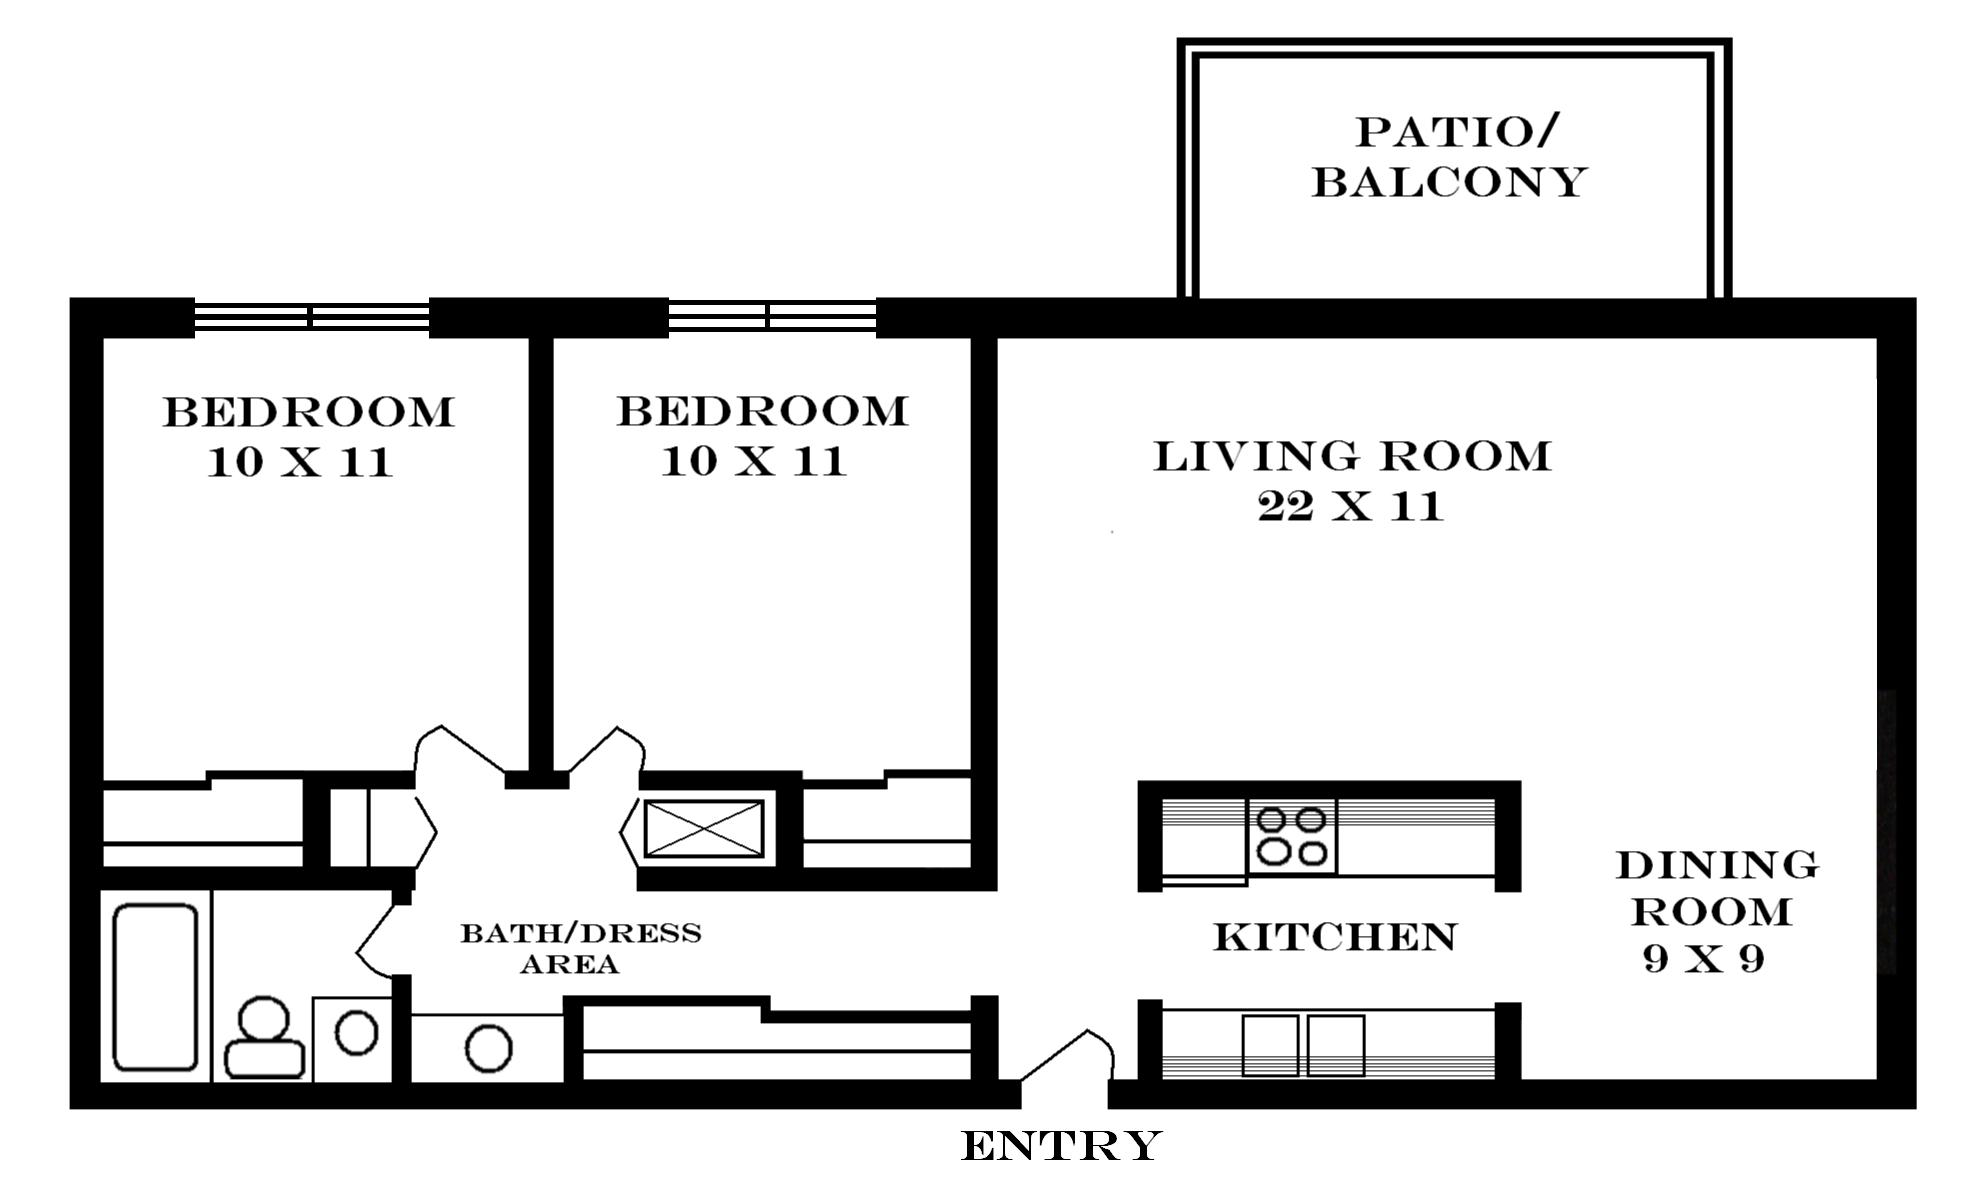 Lawrence apartments meadowbrook 2601 dover square for House plans with 2 bedrooms in basement